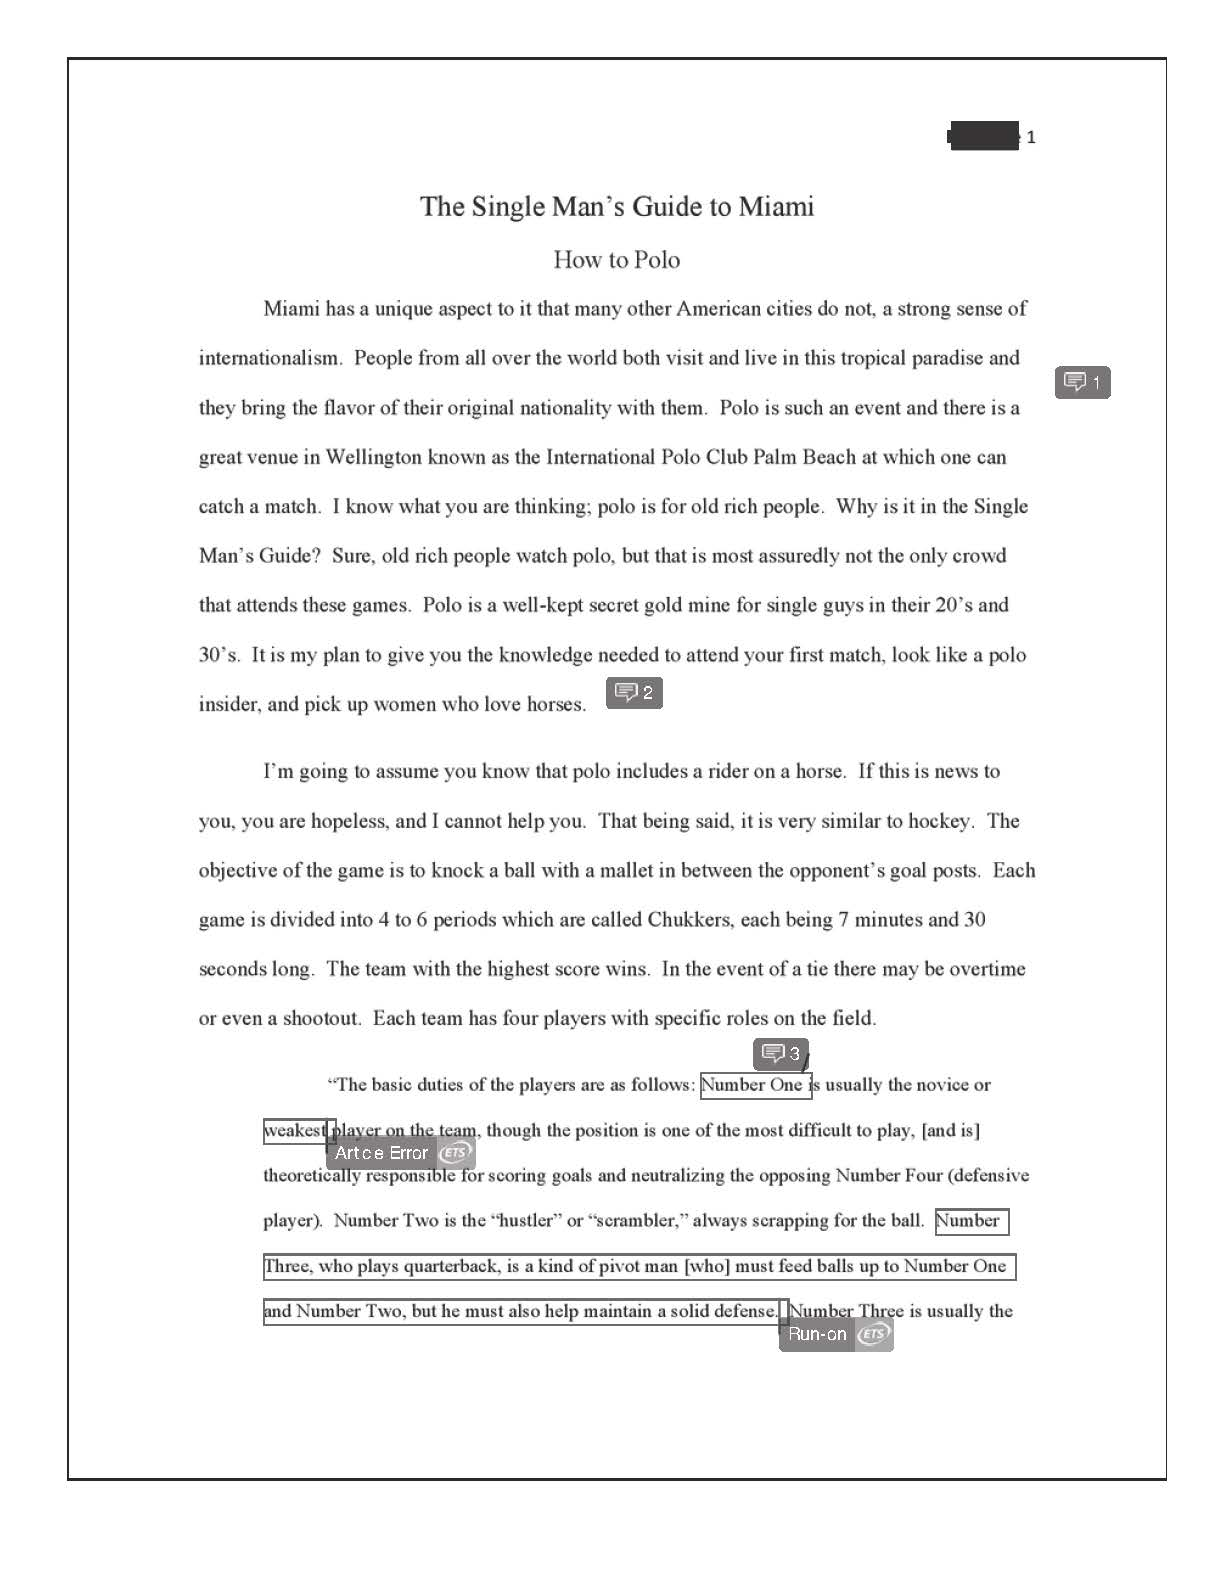 010 American Dream Argumentative Essay The Essays Is Gatsby Great What Still Alive Informative Final How To Polo Redacted P Attainable Argument Prompt Topics Marvelous Examples Full